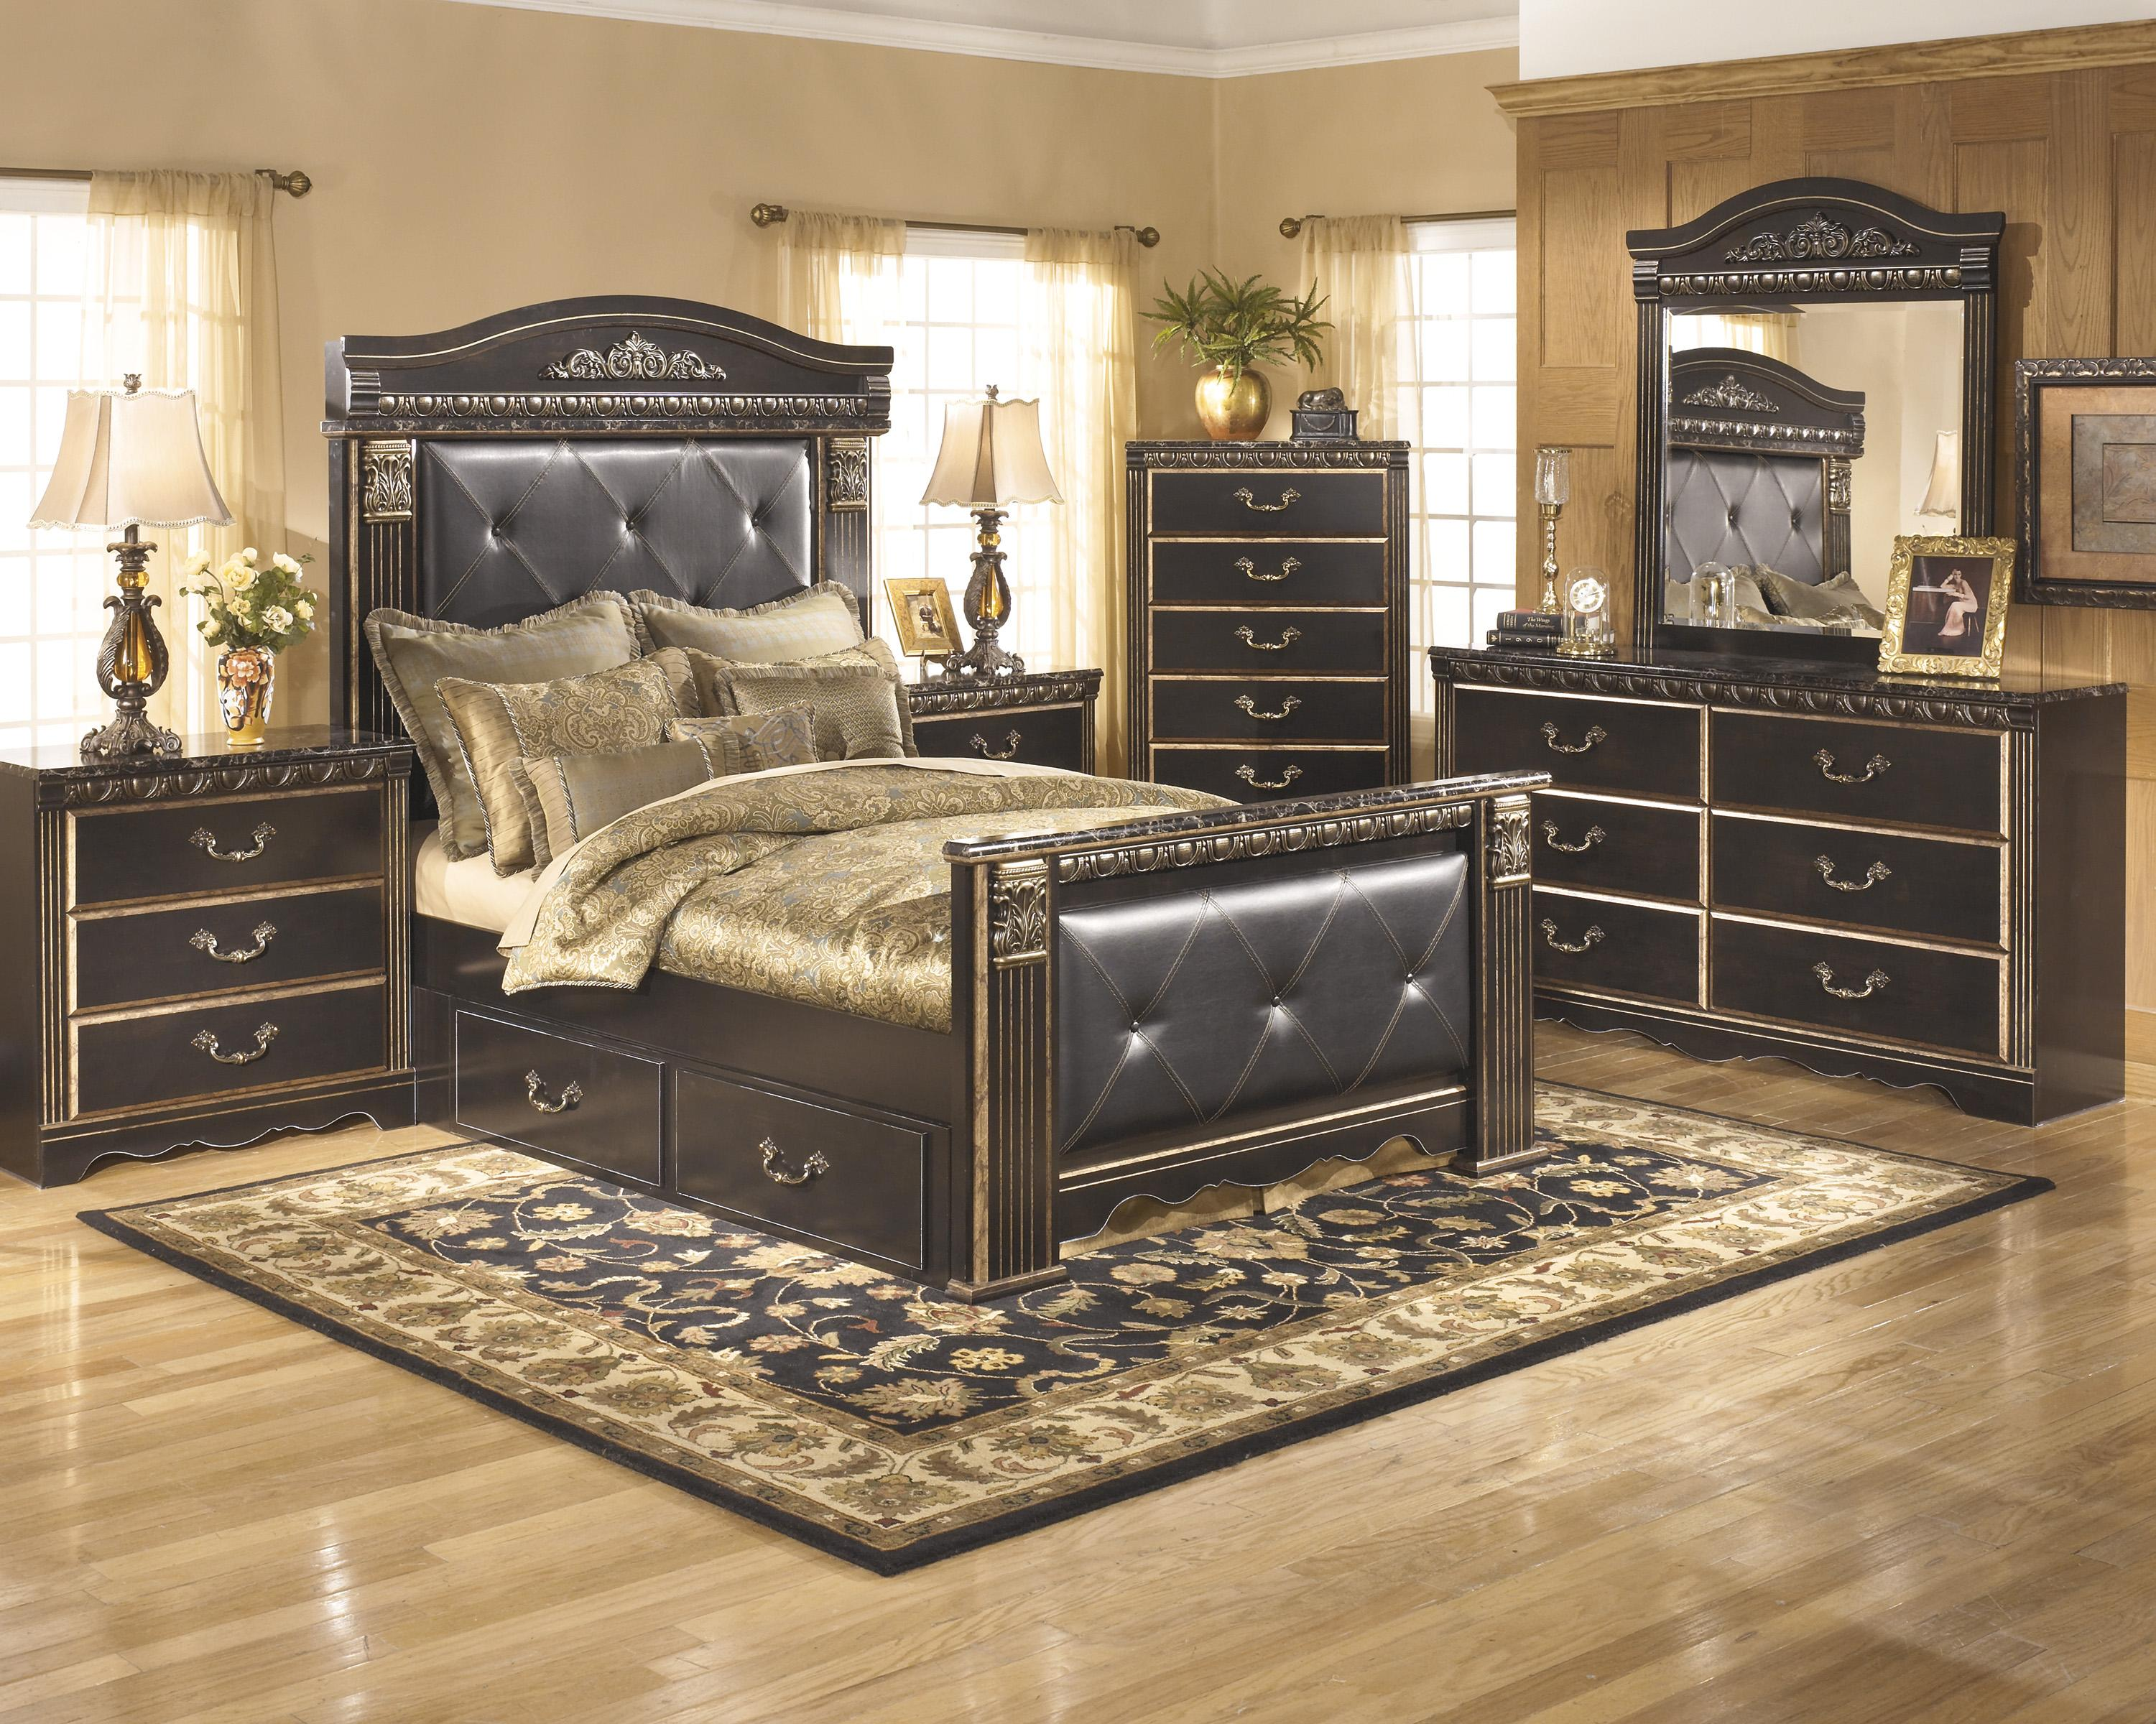 Signature Design by Ashley Coal Creek Queen Bedroom Group - Item Number: B175 Q Bedroom Group 2